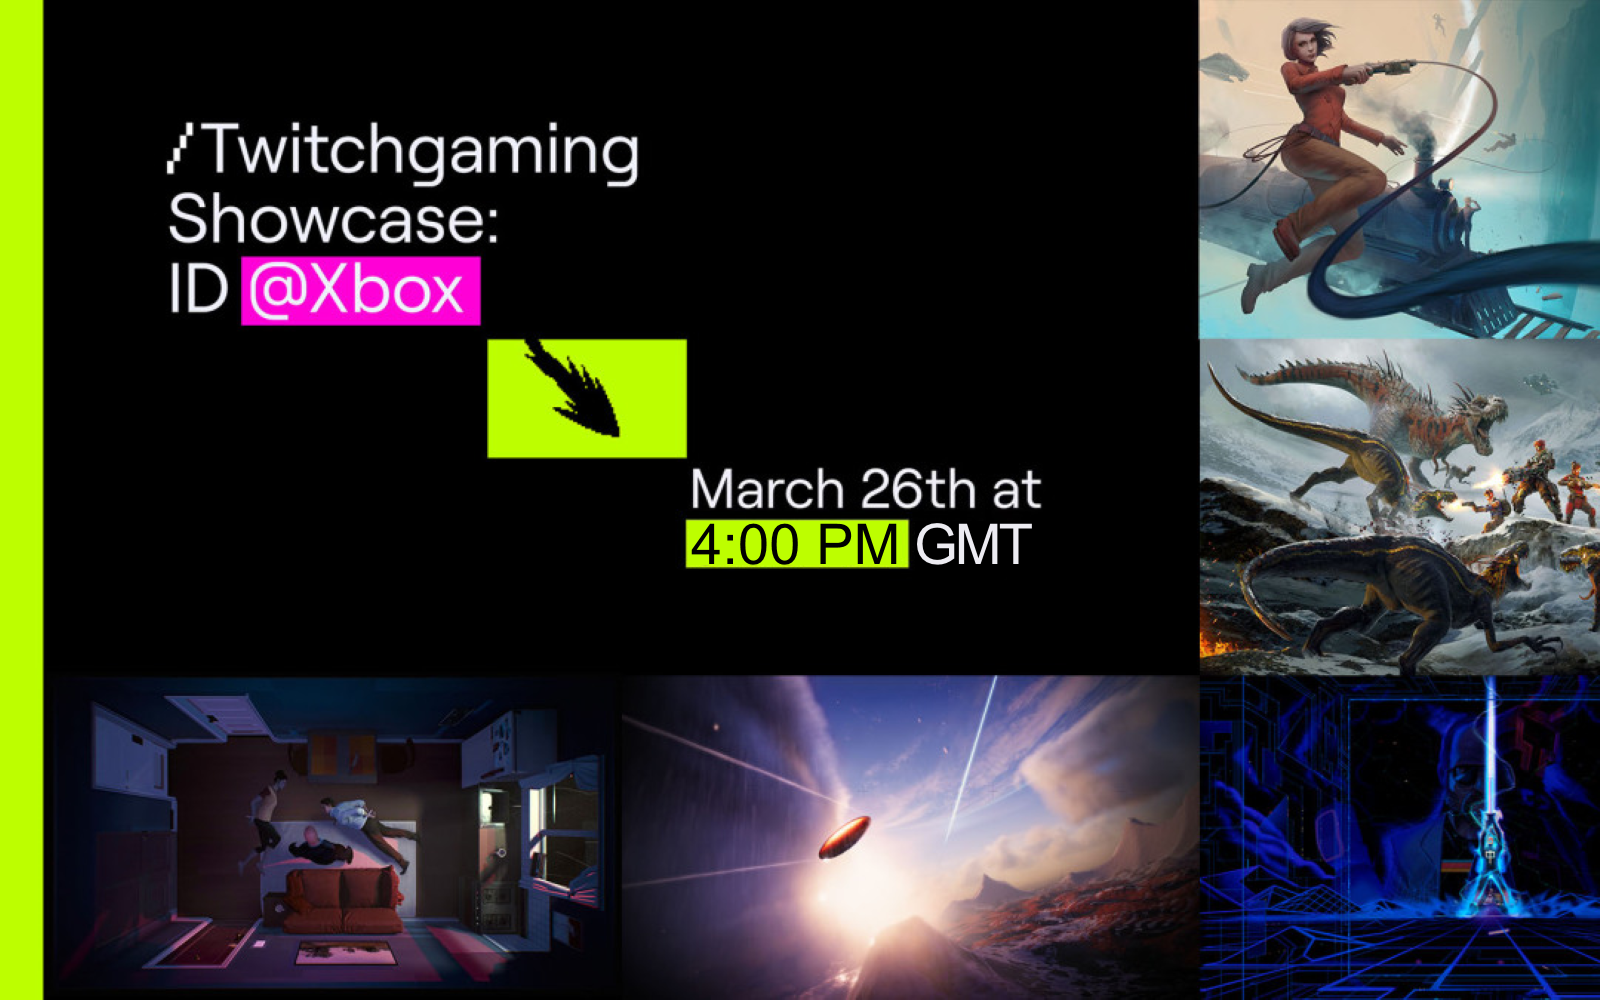 An Update On Over 100 Independent Games To Be Showcased By Xbox